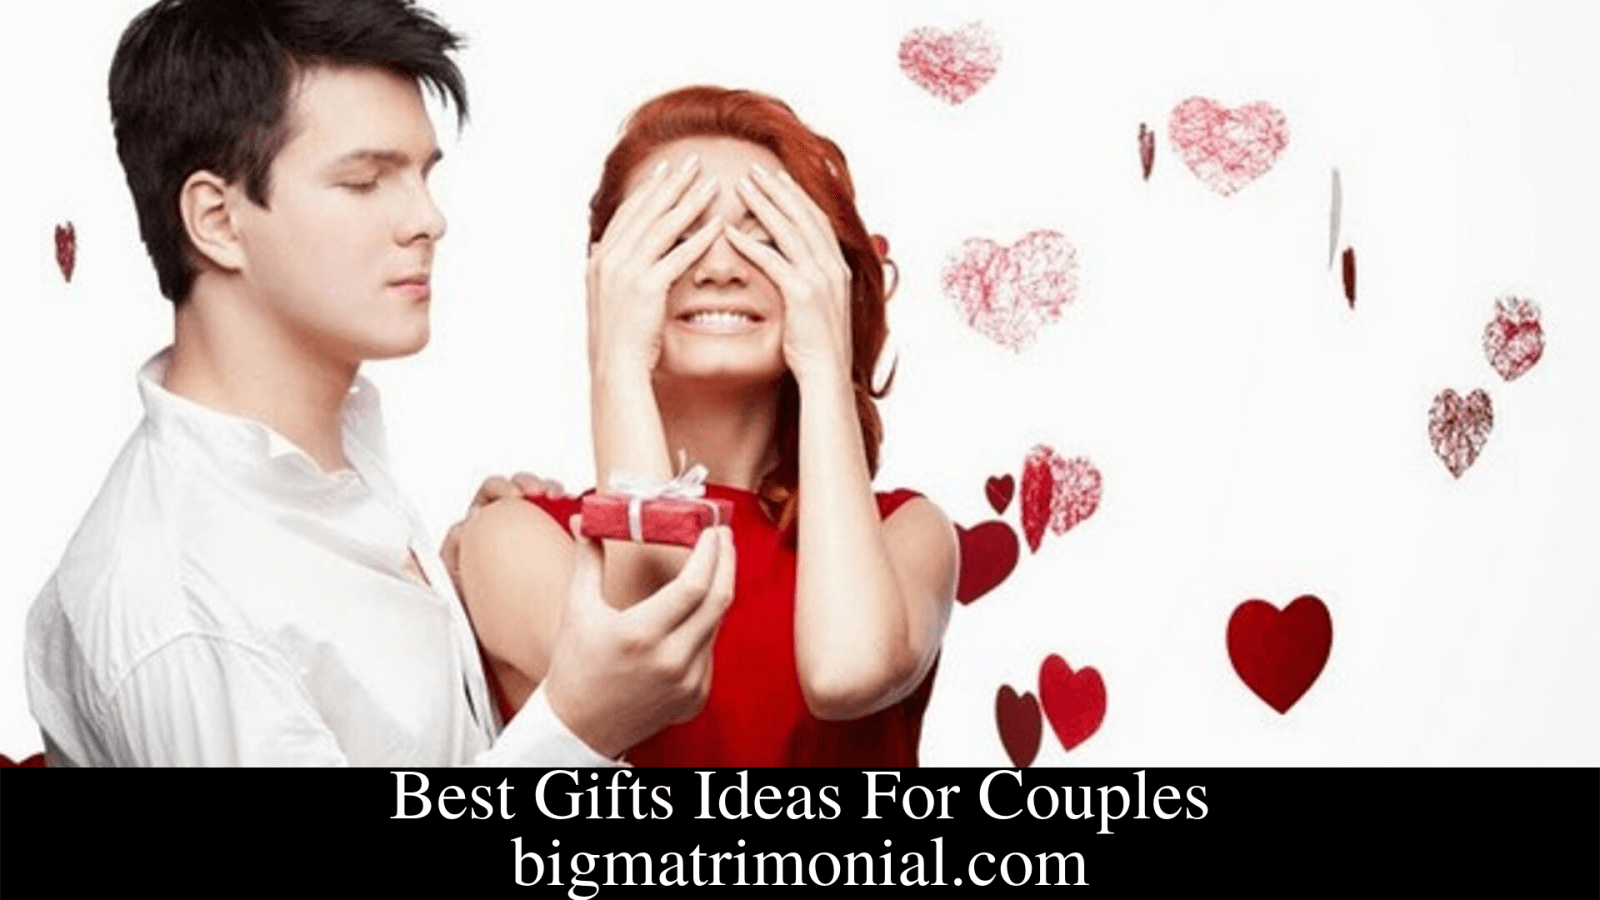 Best Gifts Ideas For Couples